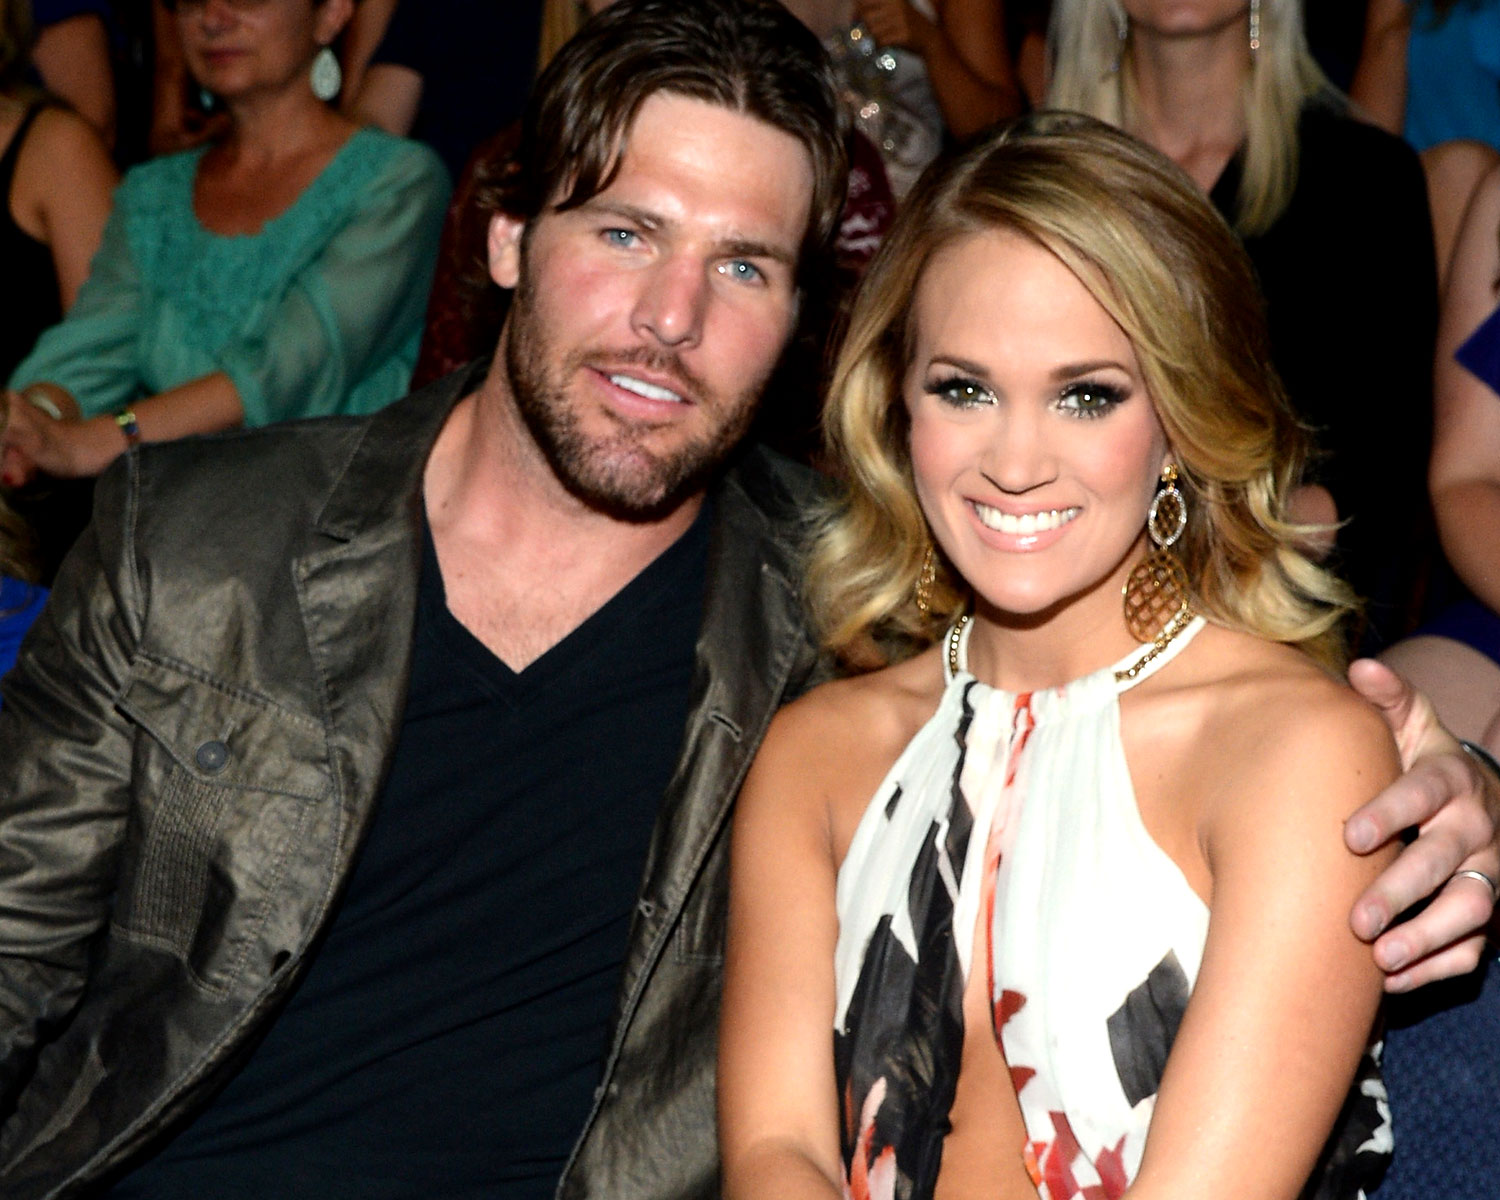 carrie underwood first met mike fisher at a fan meet and greet